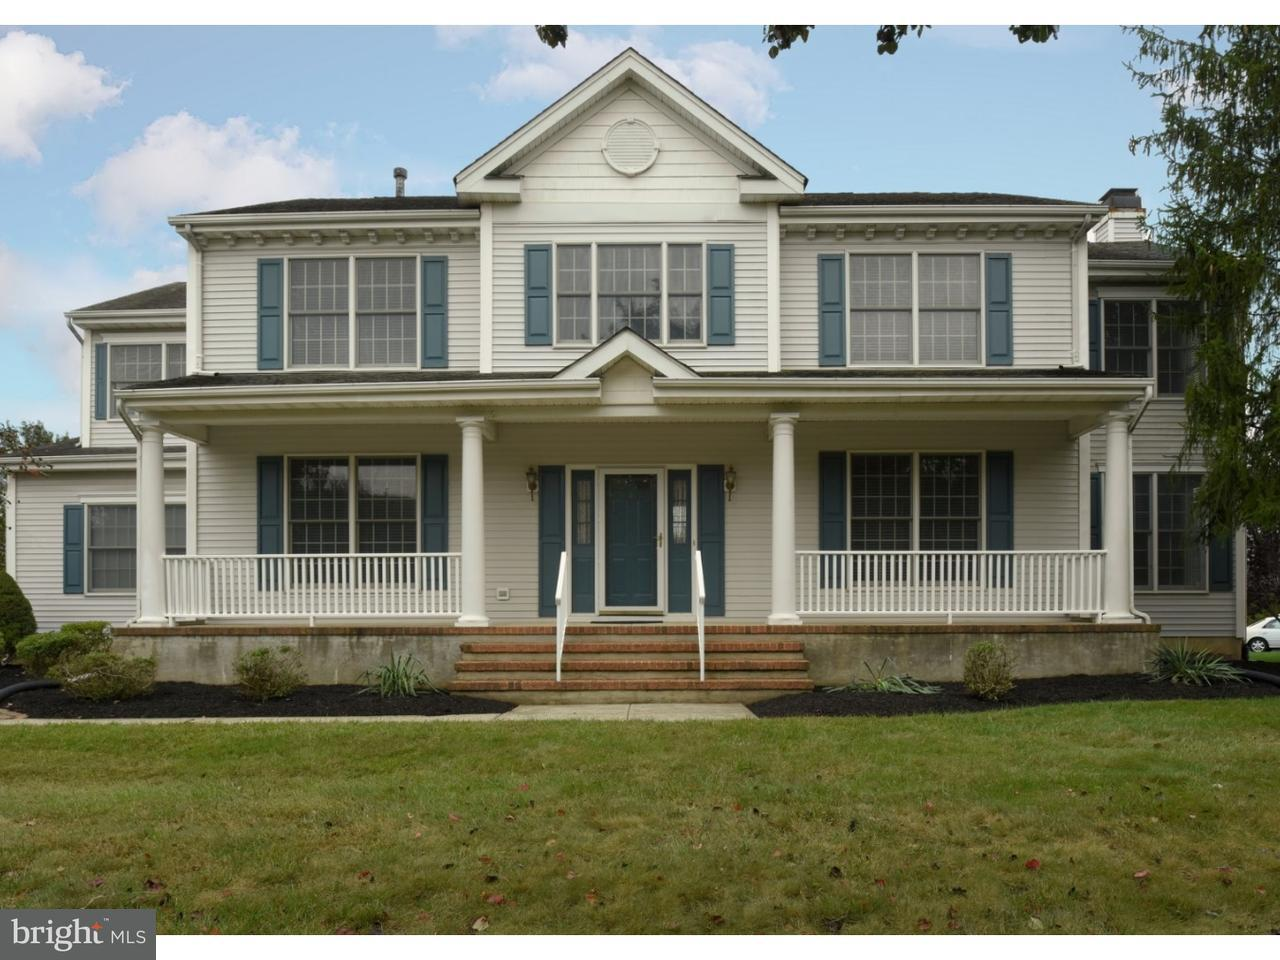 Single Family Home for Sale at 4 PERRINE Lane Cranbury, New Jersey 08512 United StatesMunicipality: Cranbury Township